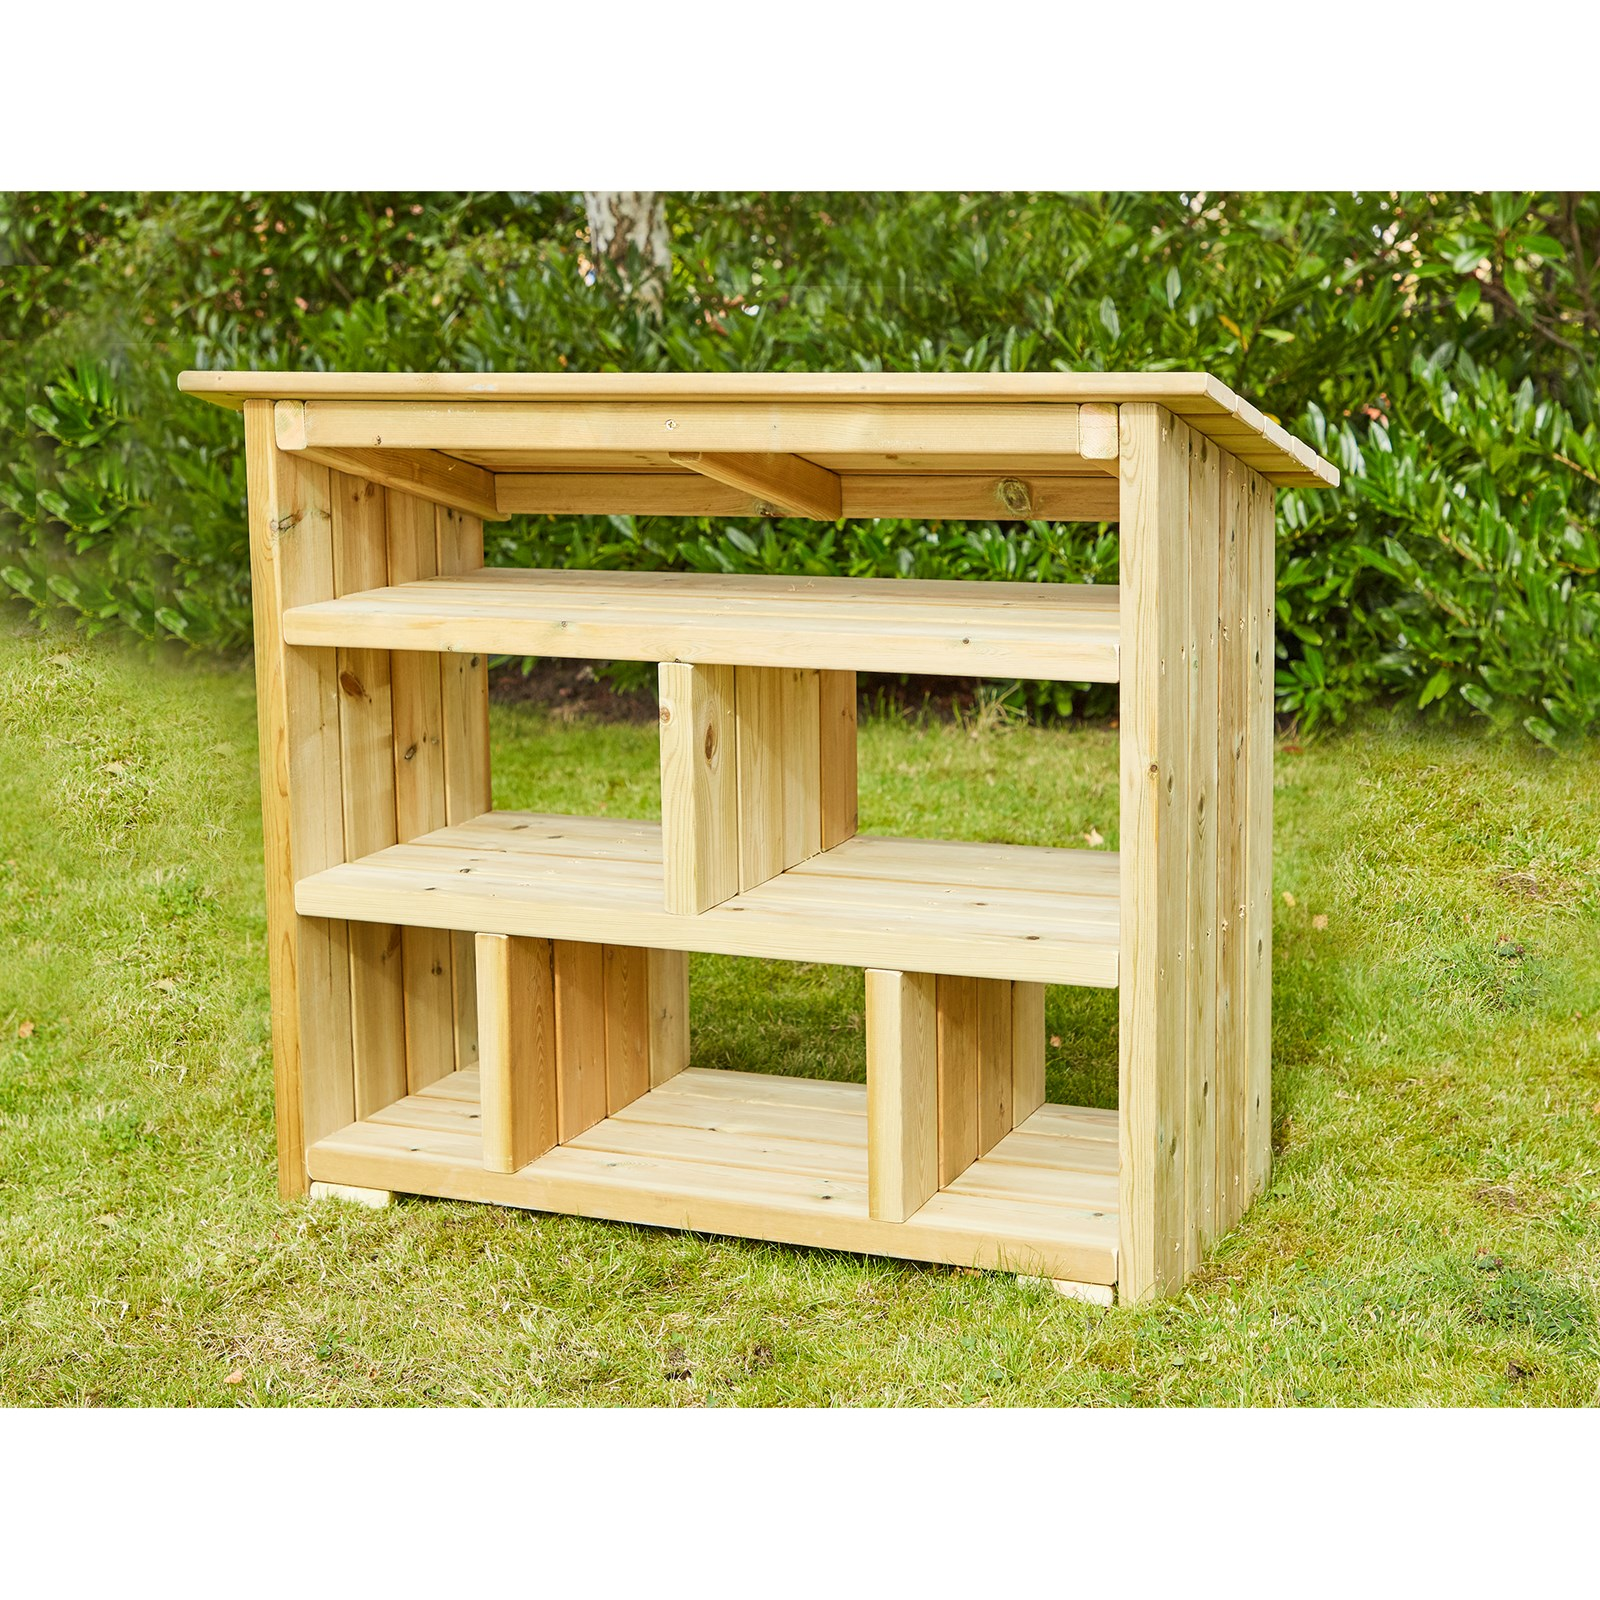 Wooden Dolls House from Hope Education